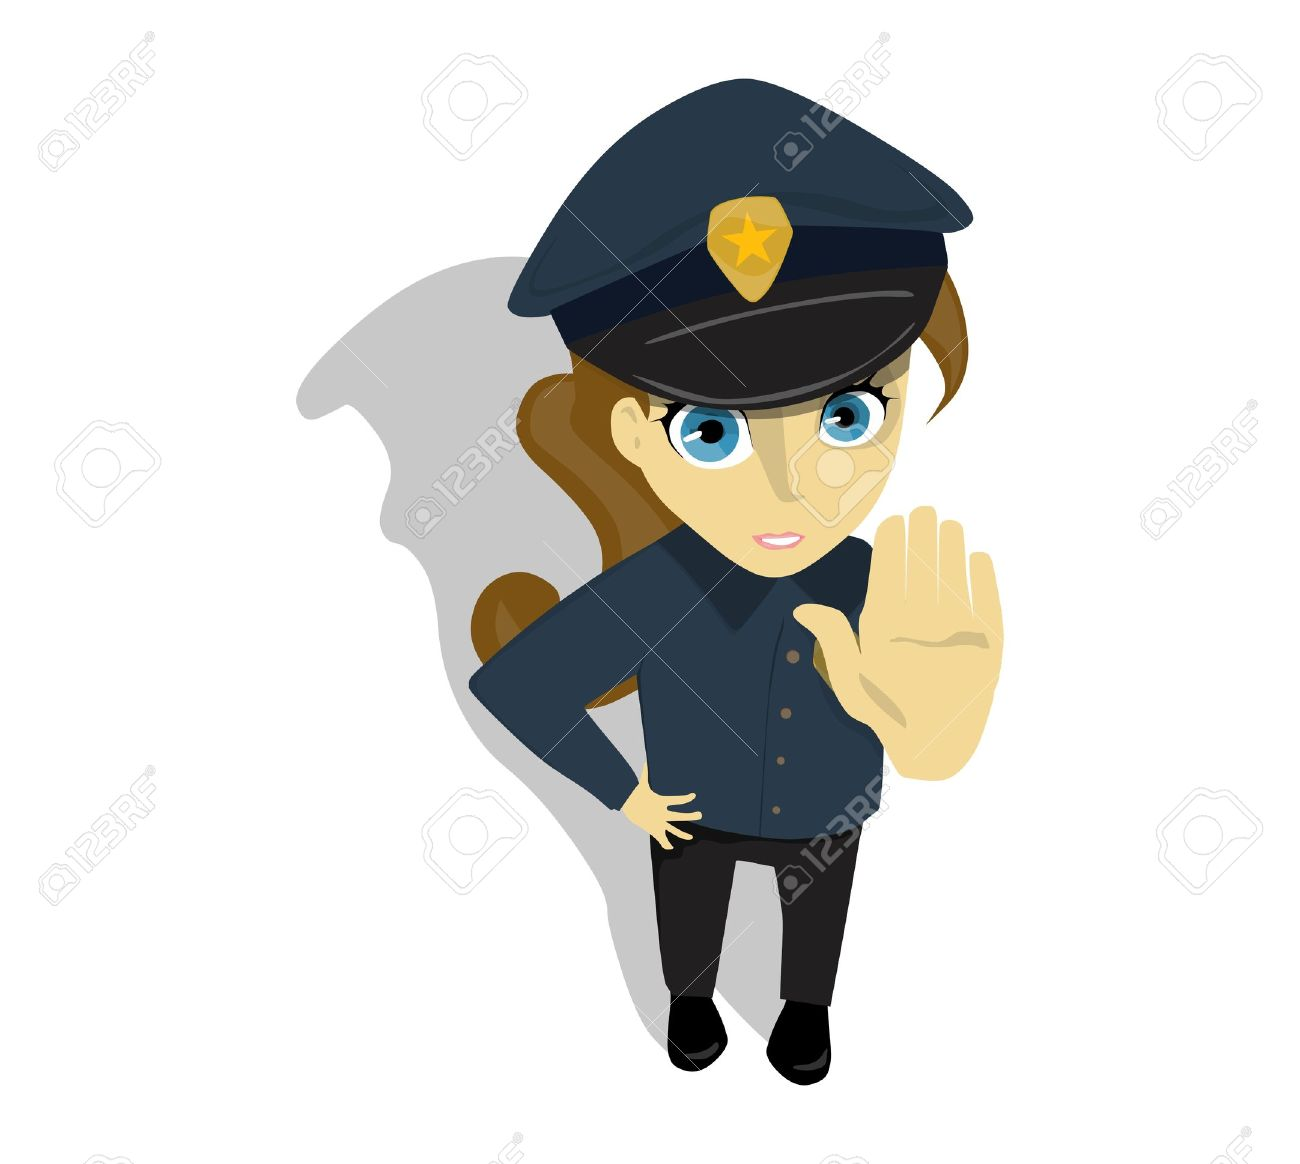 Lady security guard clipart clip art download Female security guard clipart - ClipartFest clip art download